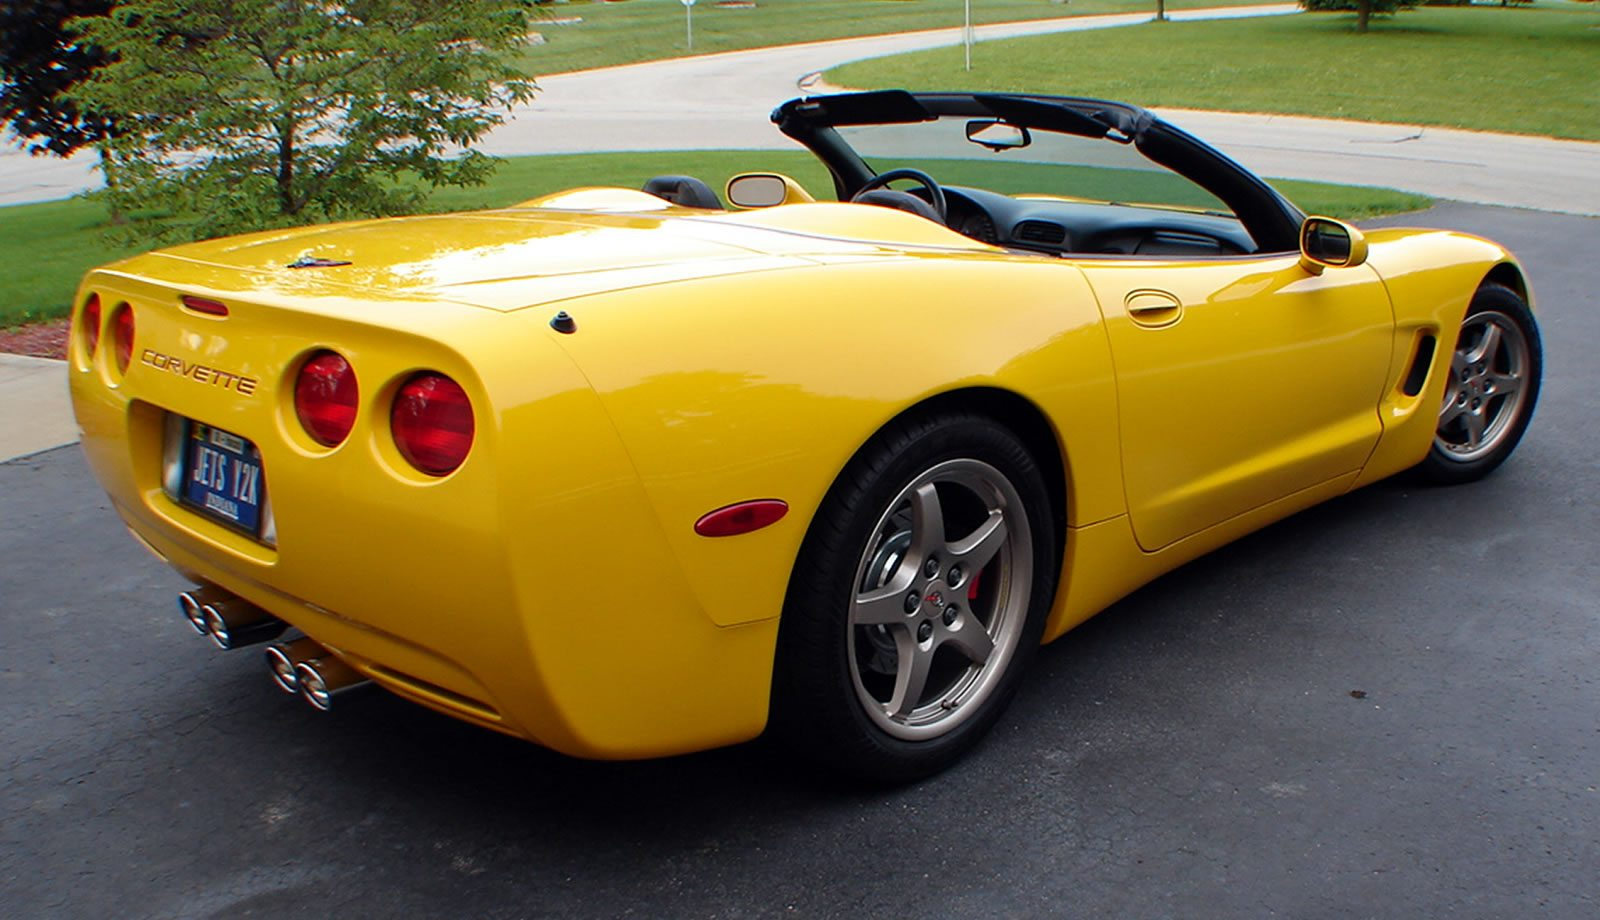 2000 corvette yellow convertible millenium speed c5 chevrolet corvettes corvsport